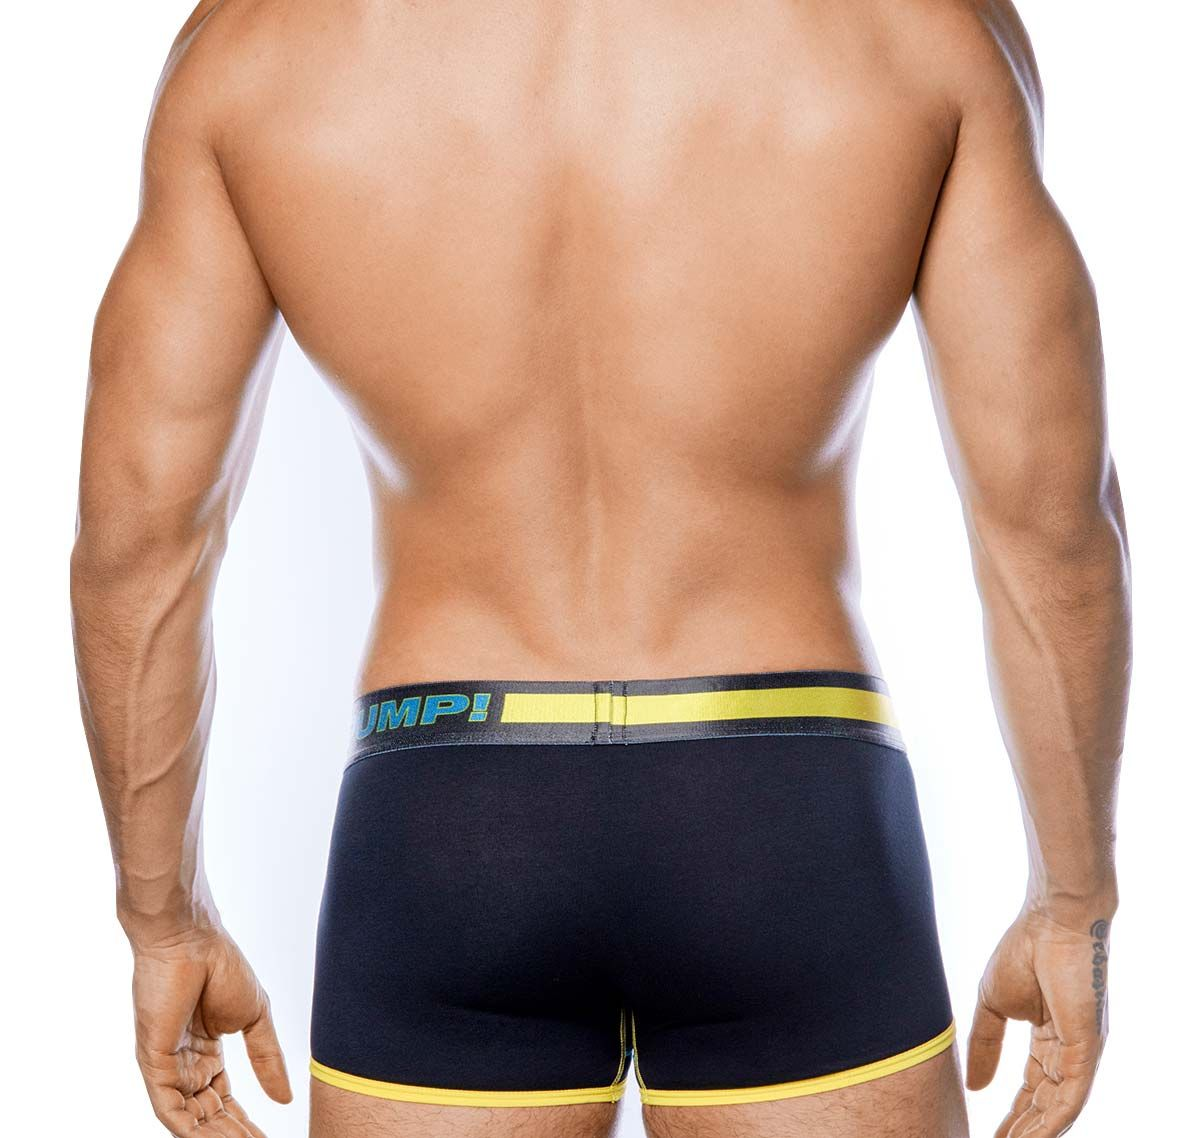 PUMP! Boxershorts PLAY YELLOW BOXER 11094, gelb